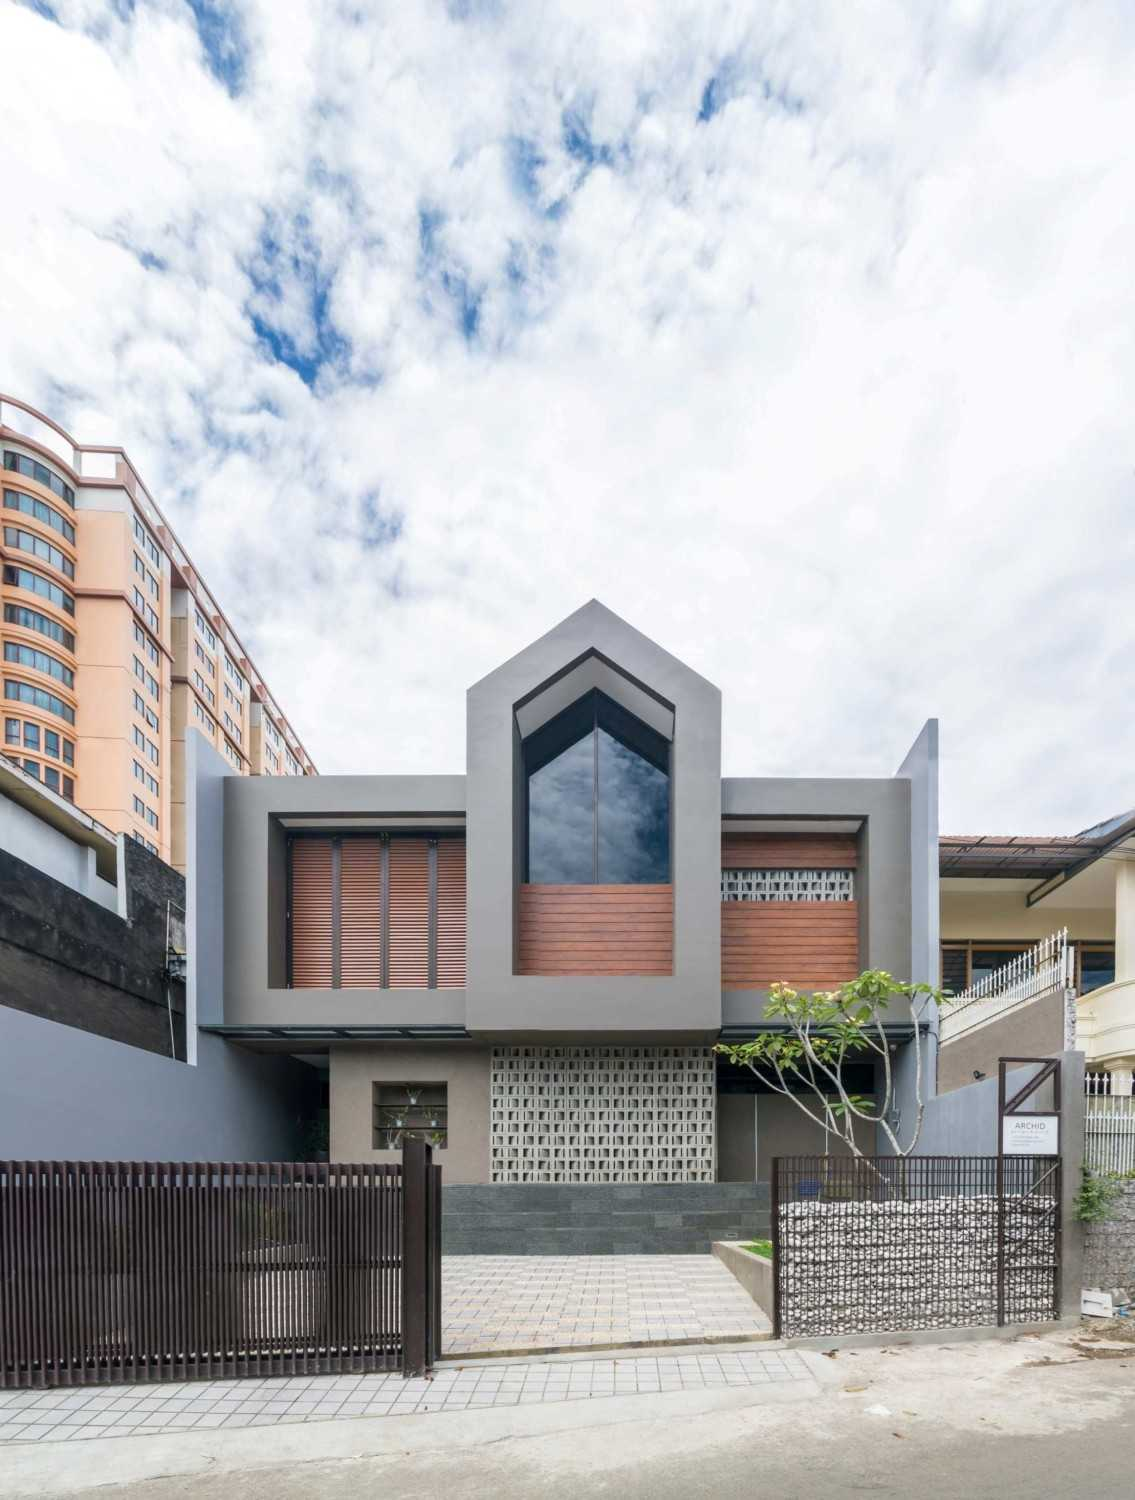 Archid Design&build Dast Residence Bandung, Kota Bandung, Jawa Barat, Indonesia Bandung, Kota Bandung, Jawa Barat, Indonesia Front View Contemporary 49026